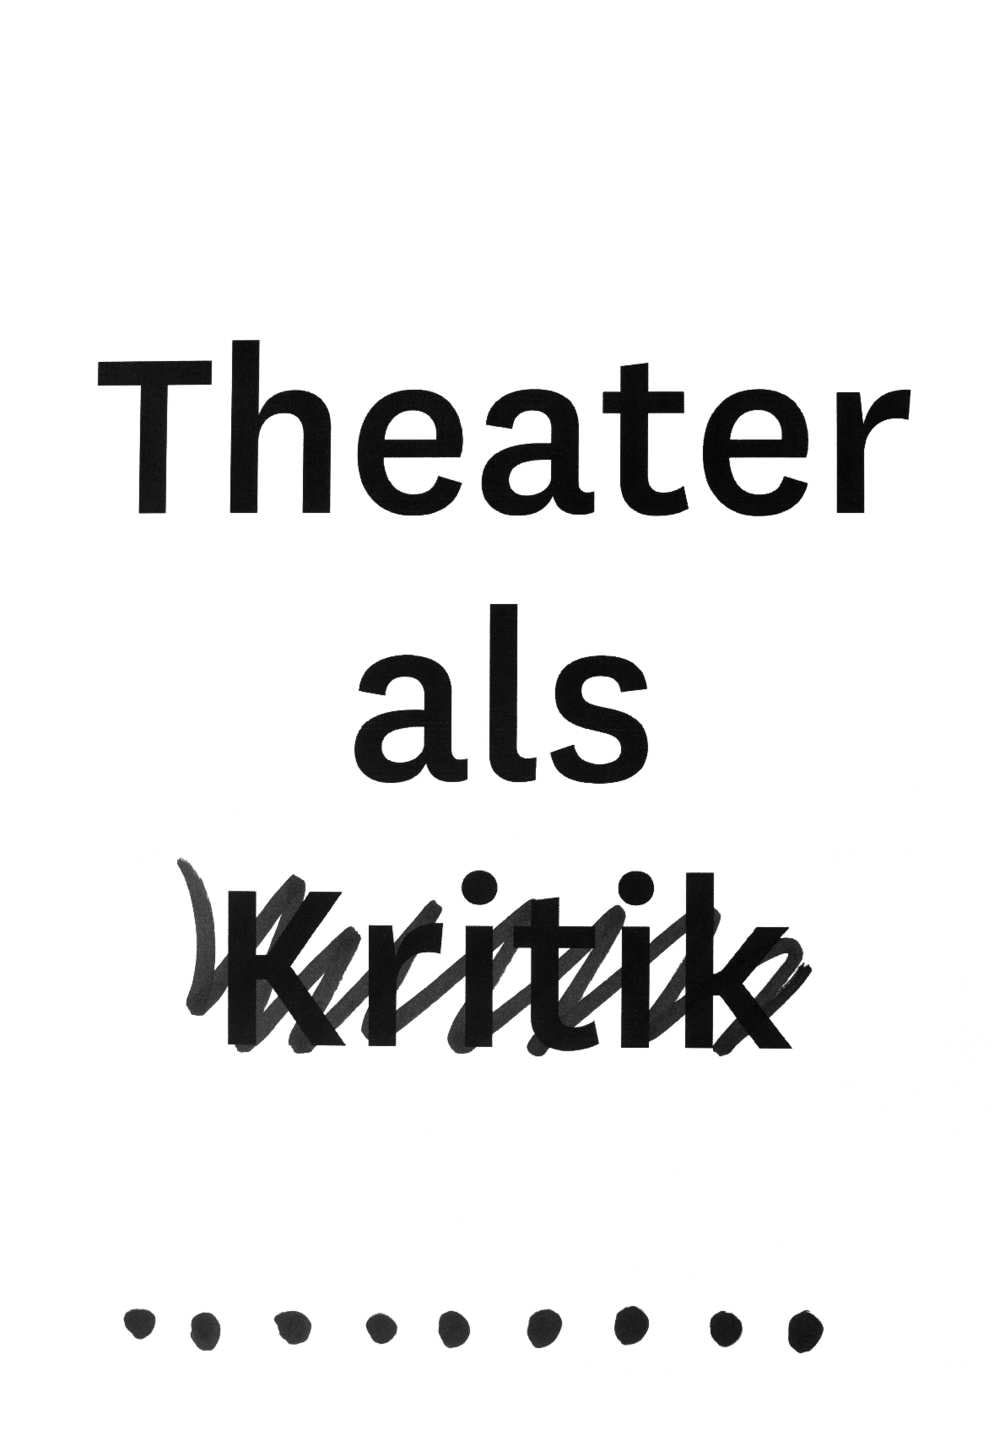 theater-as-critique-slip-14-1005x1435px